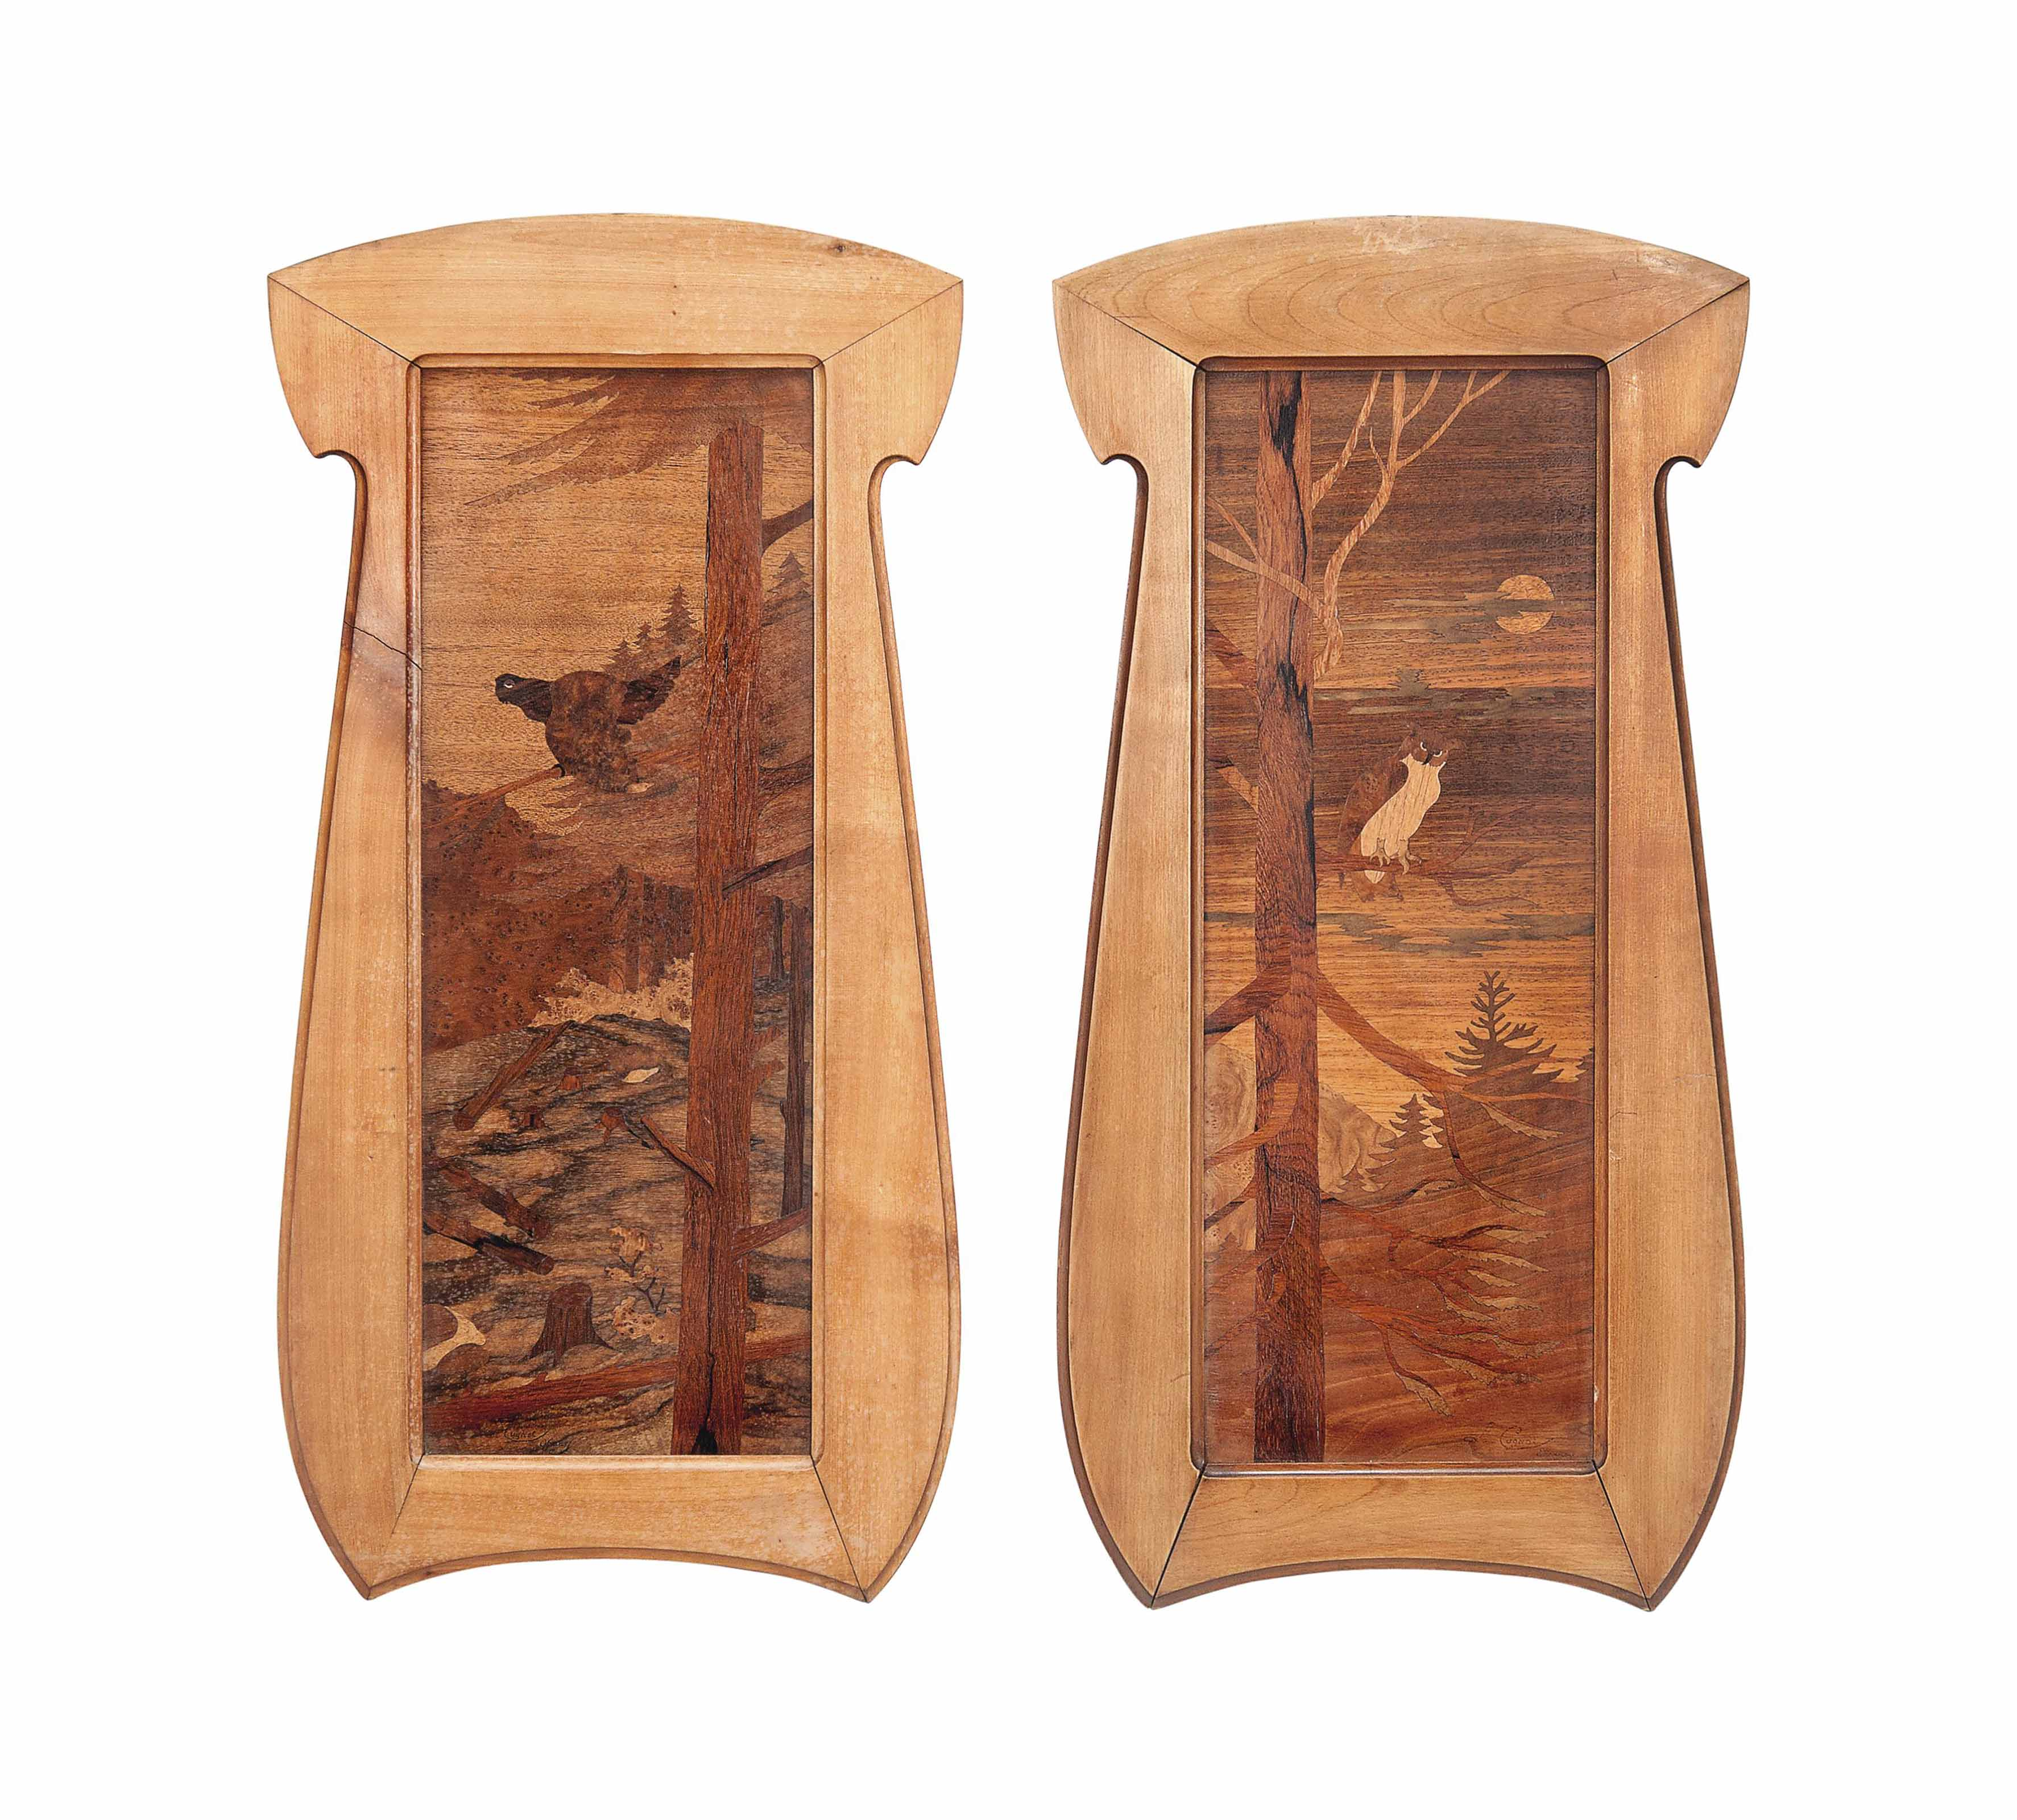 A PAIR OF MARQUETRY PANELS ATT